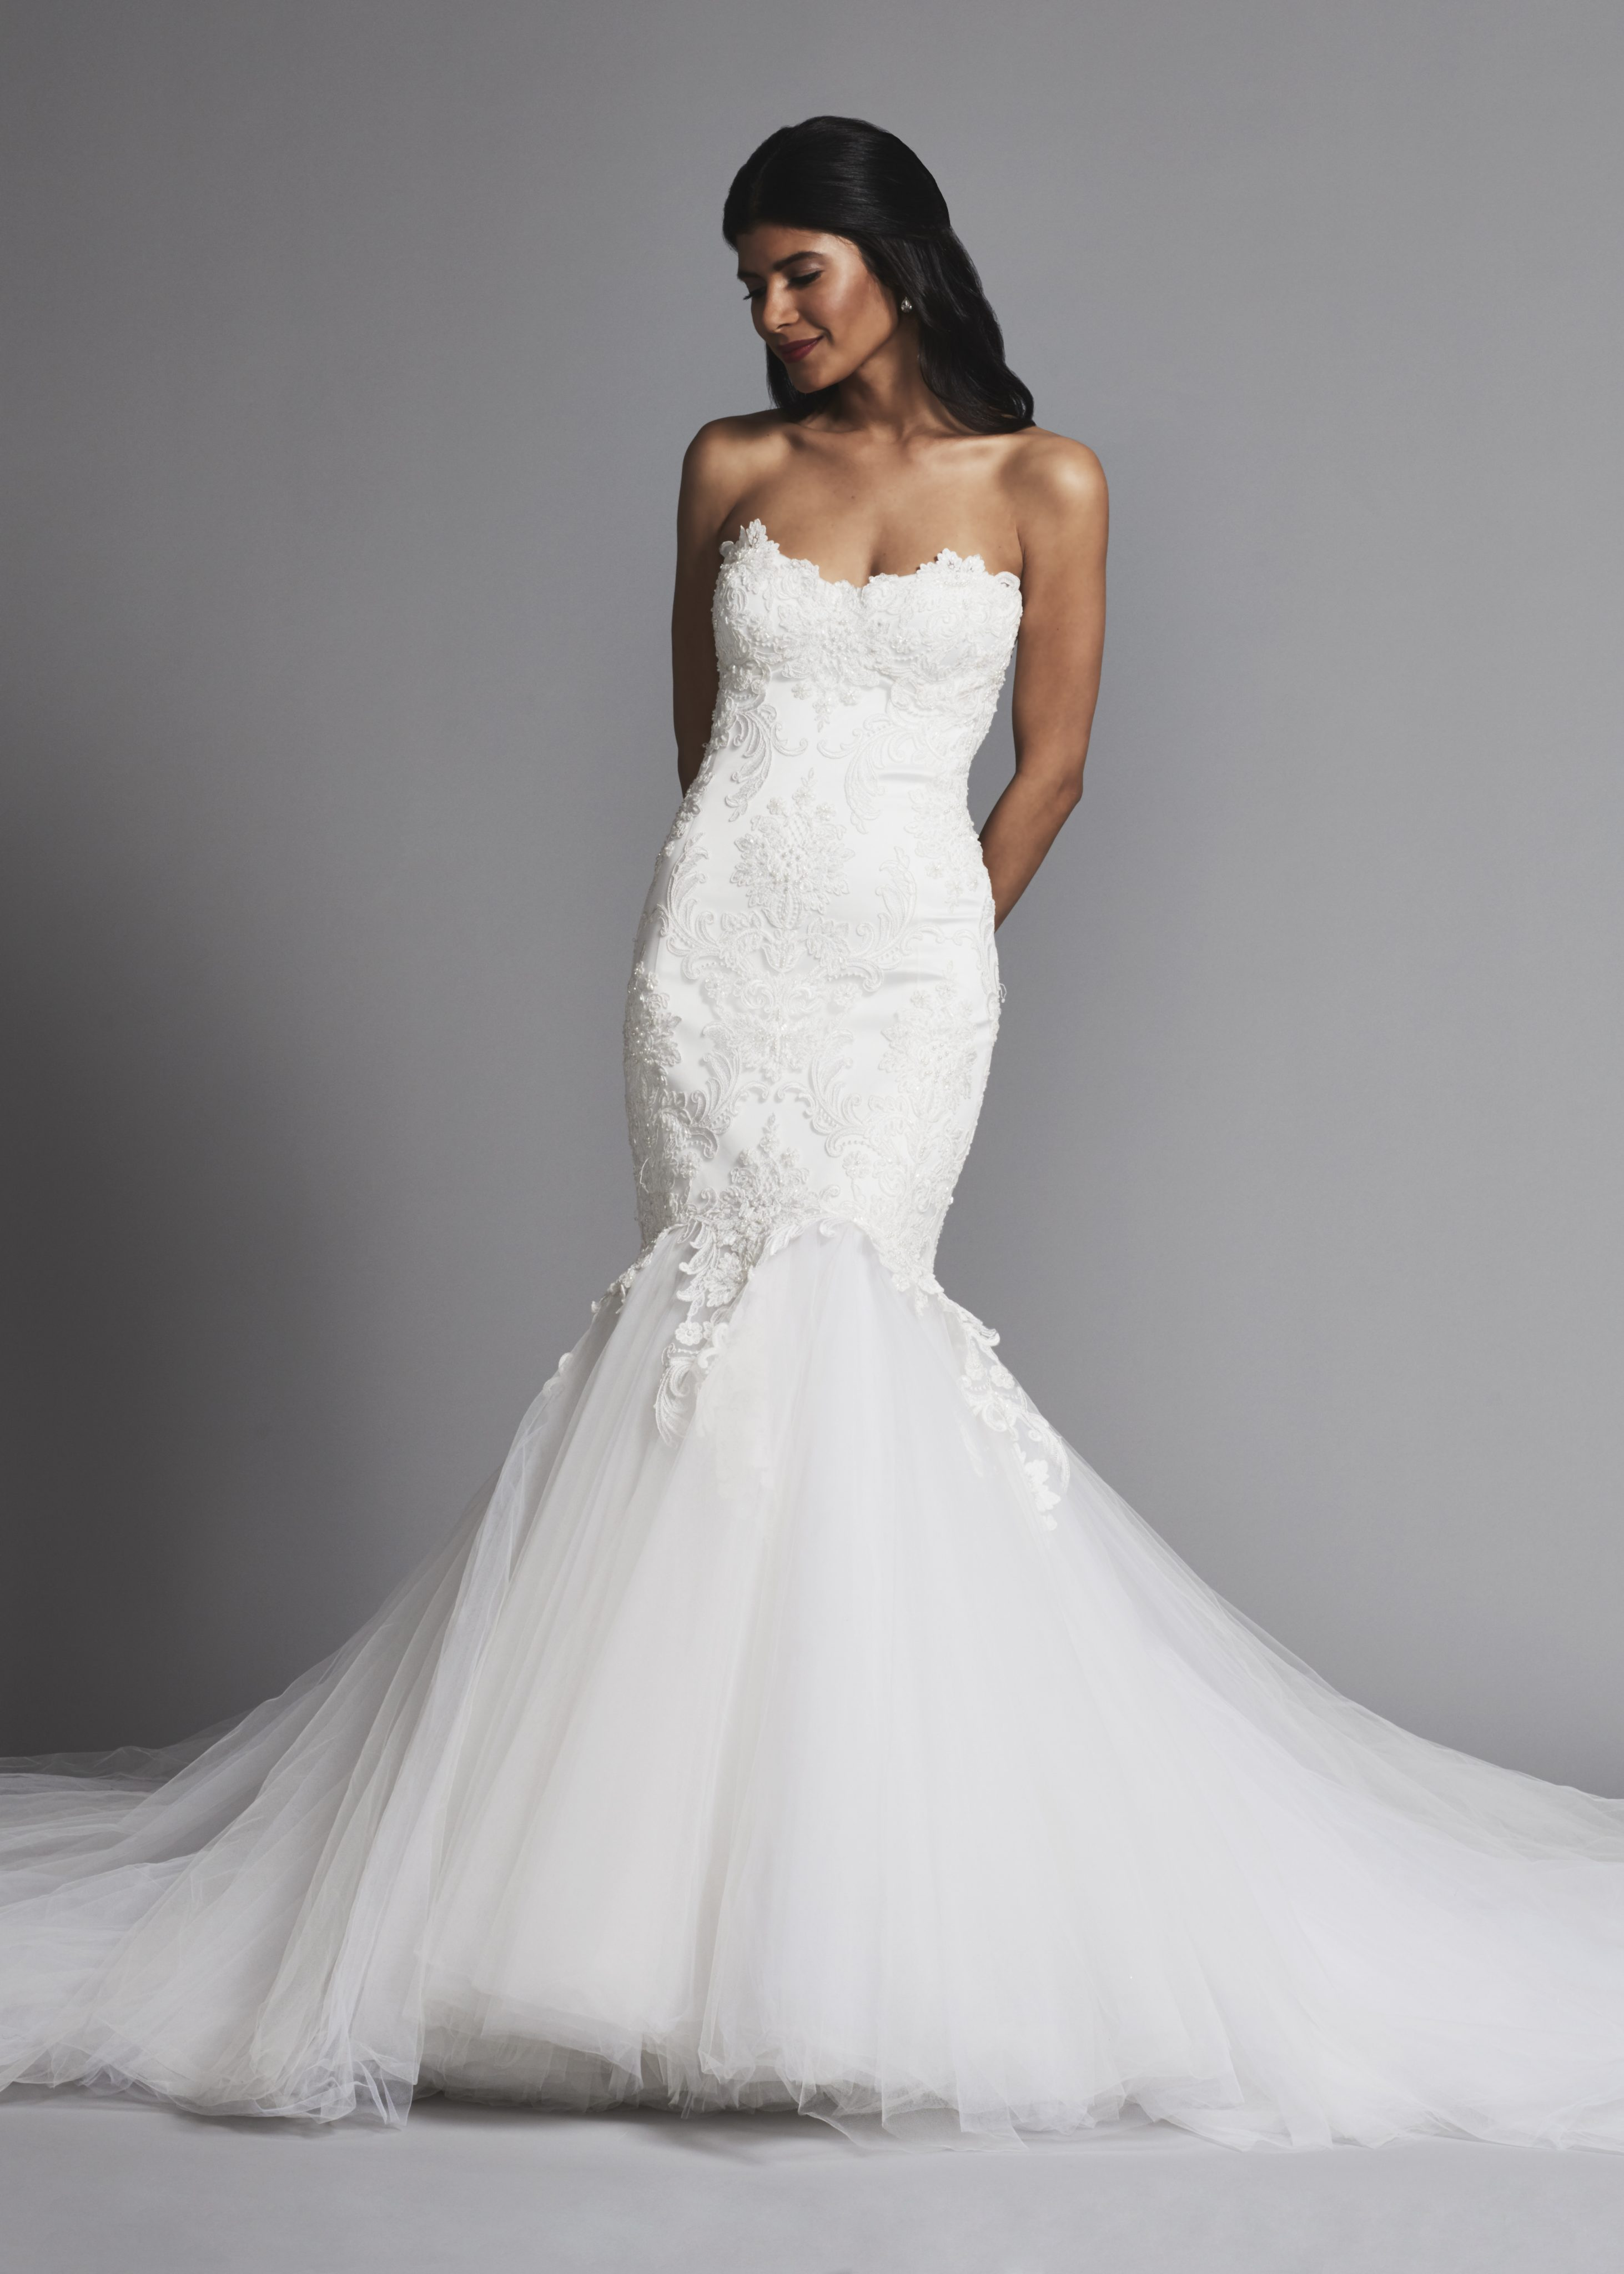 Romantic Lace Mermaid Wedding Dress With Full Tulle Skirt  Kleinfeld Bridal